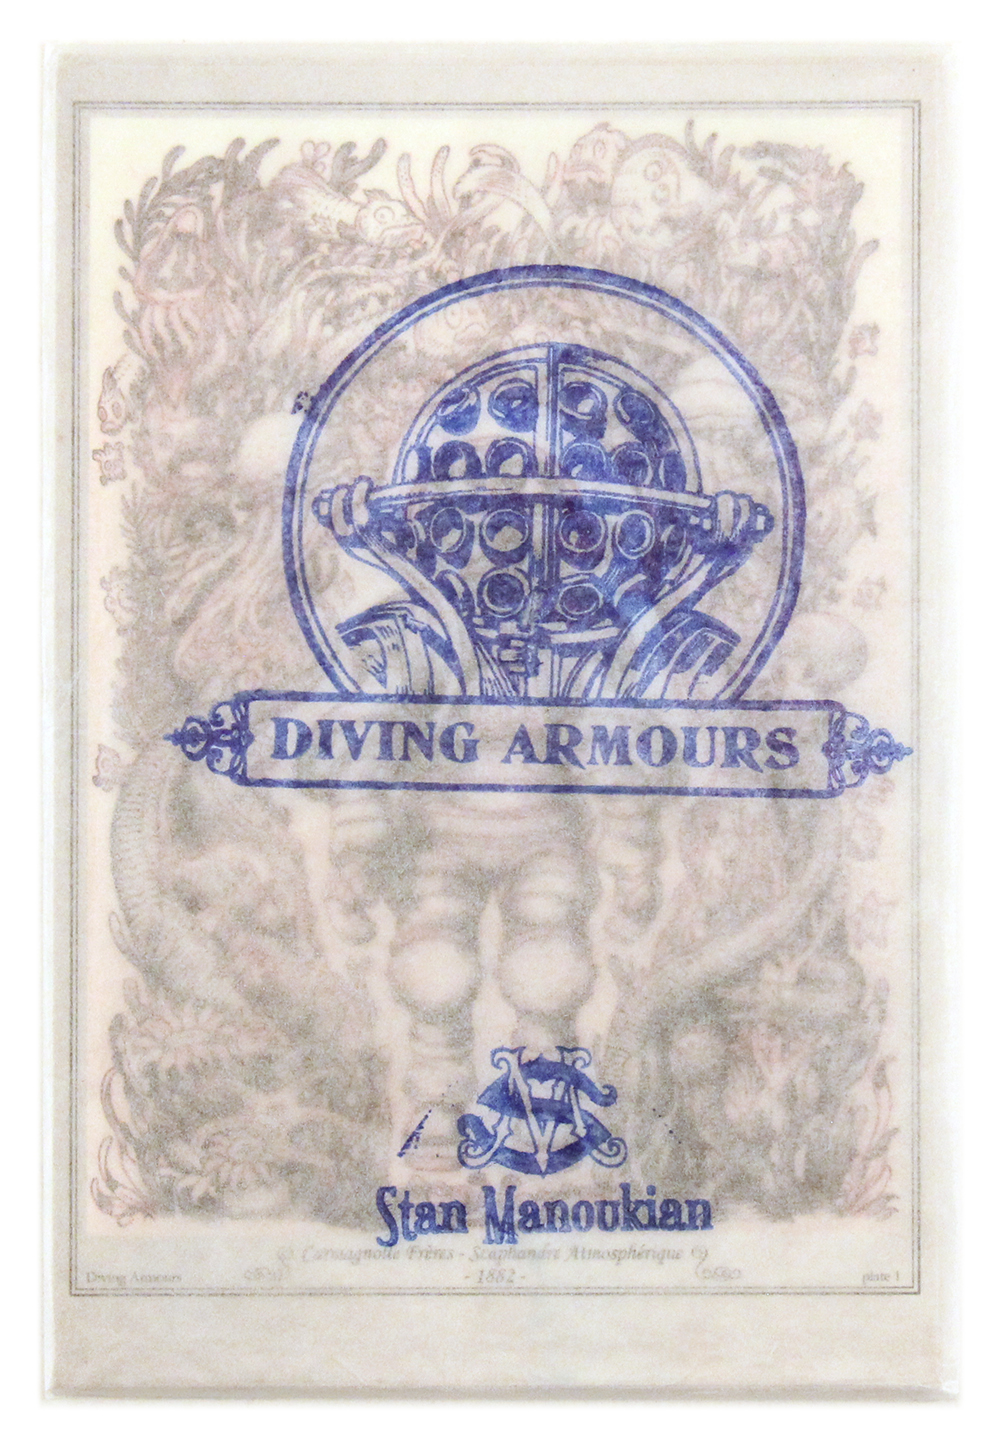 Diving Armours Postcards, Stan Manoukian